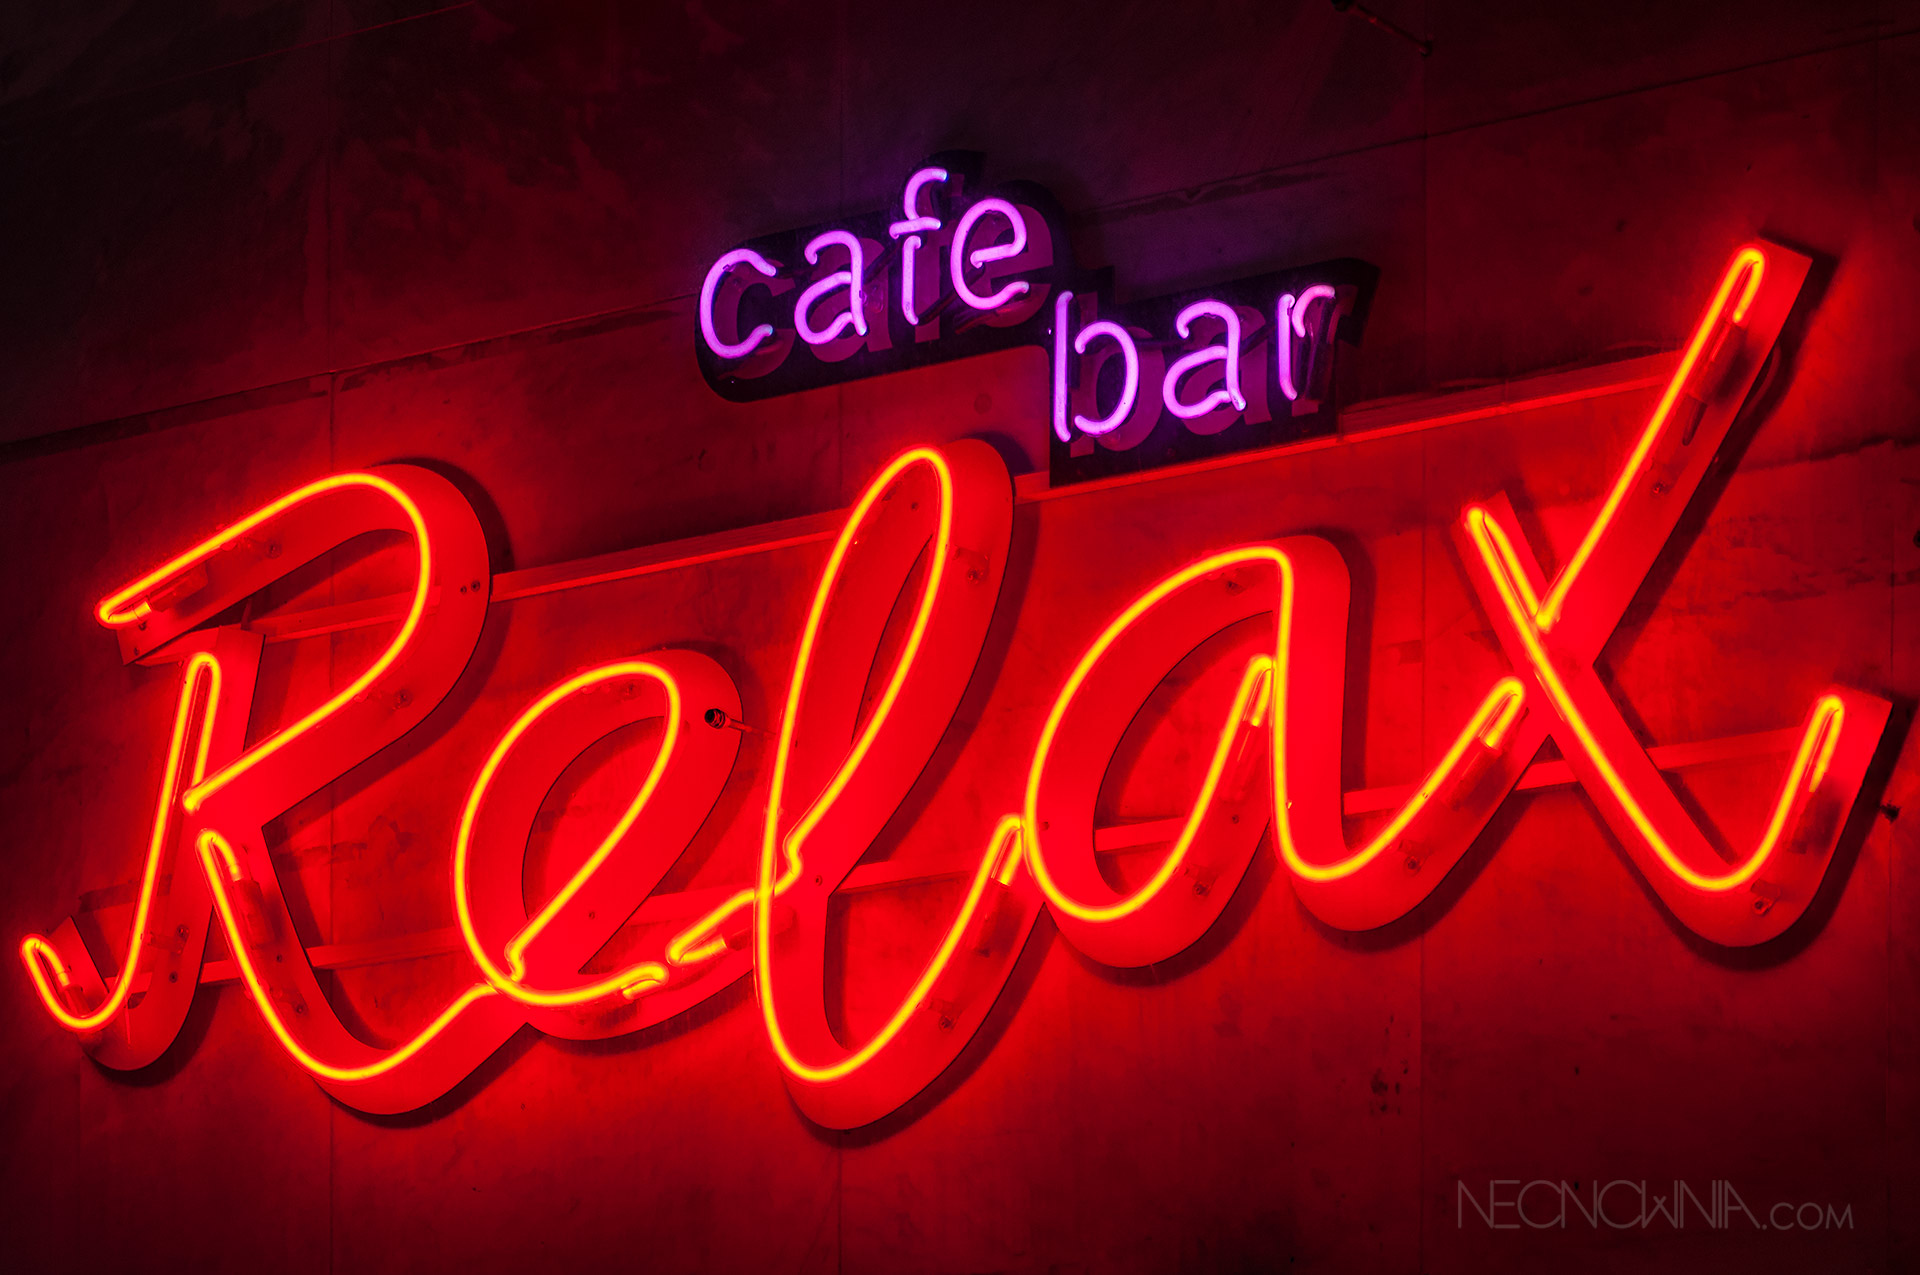 RELAX CAFE BAR